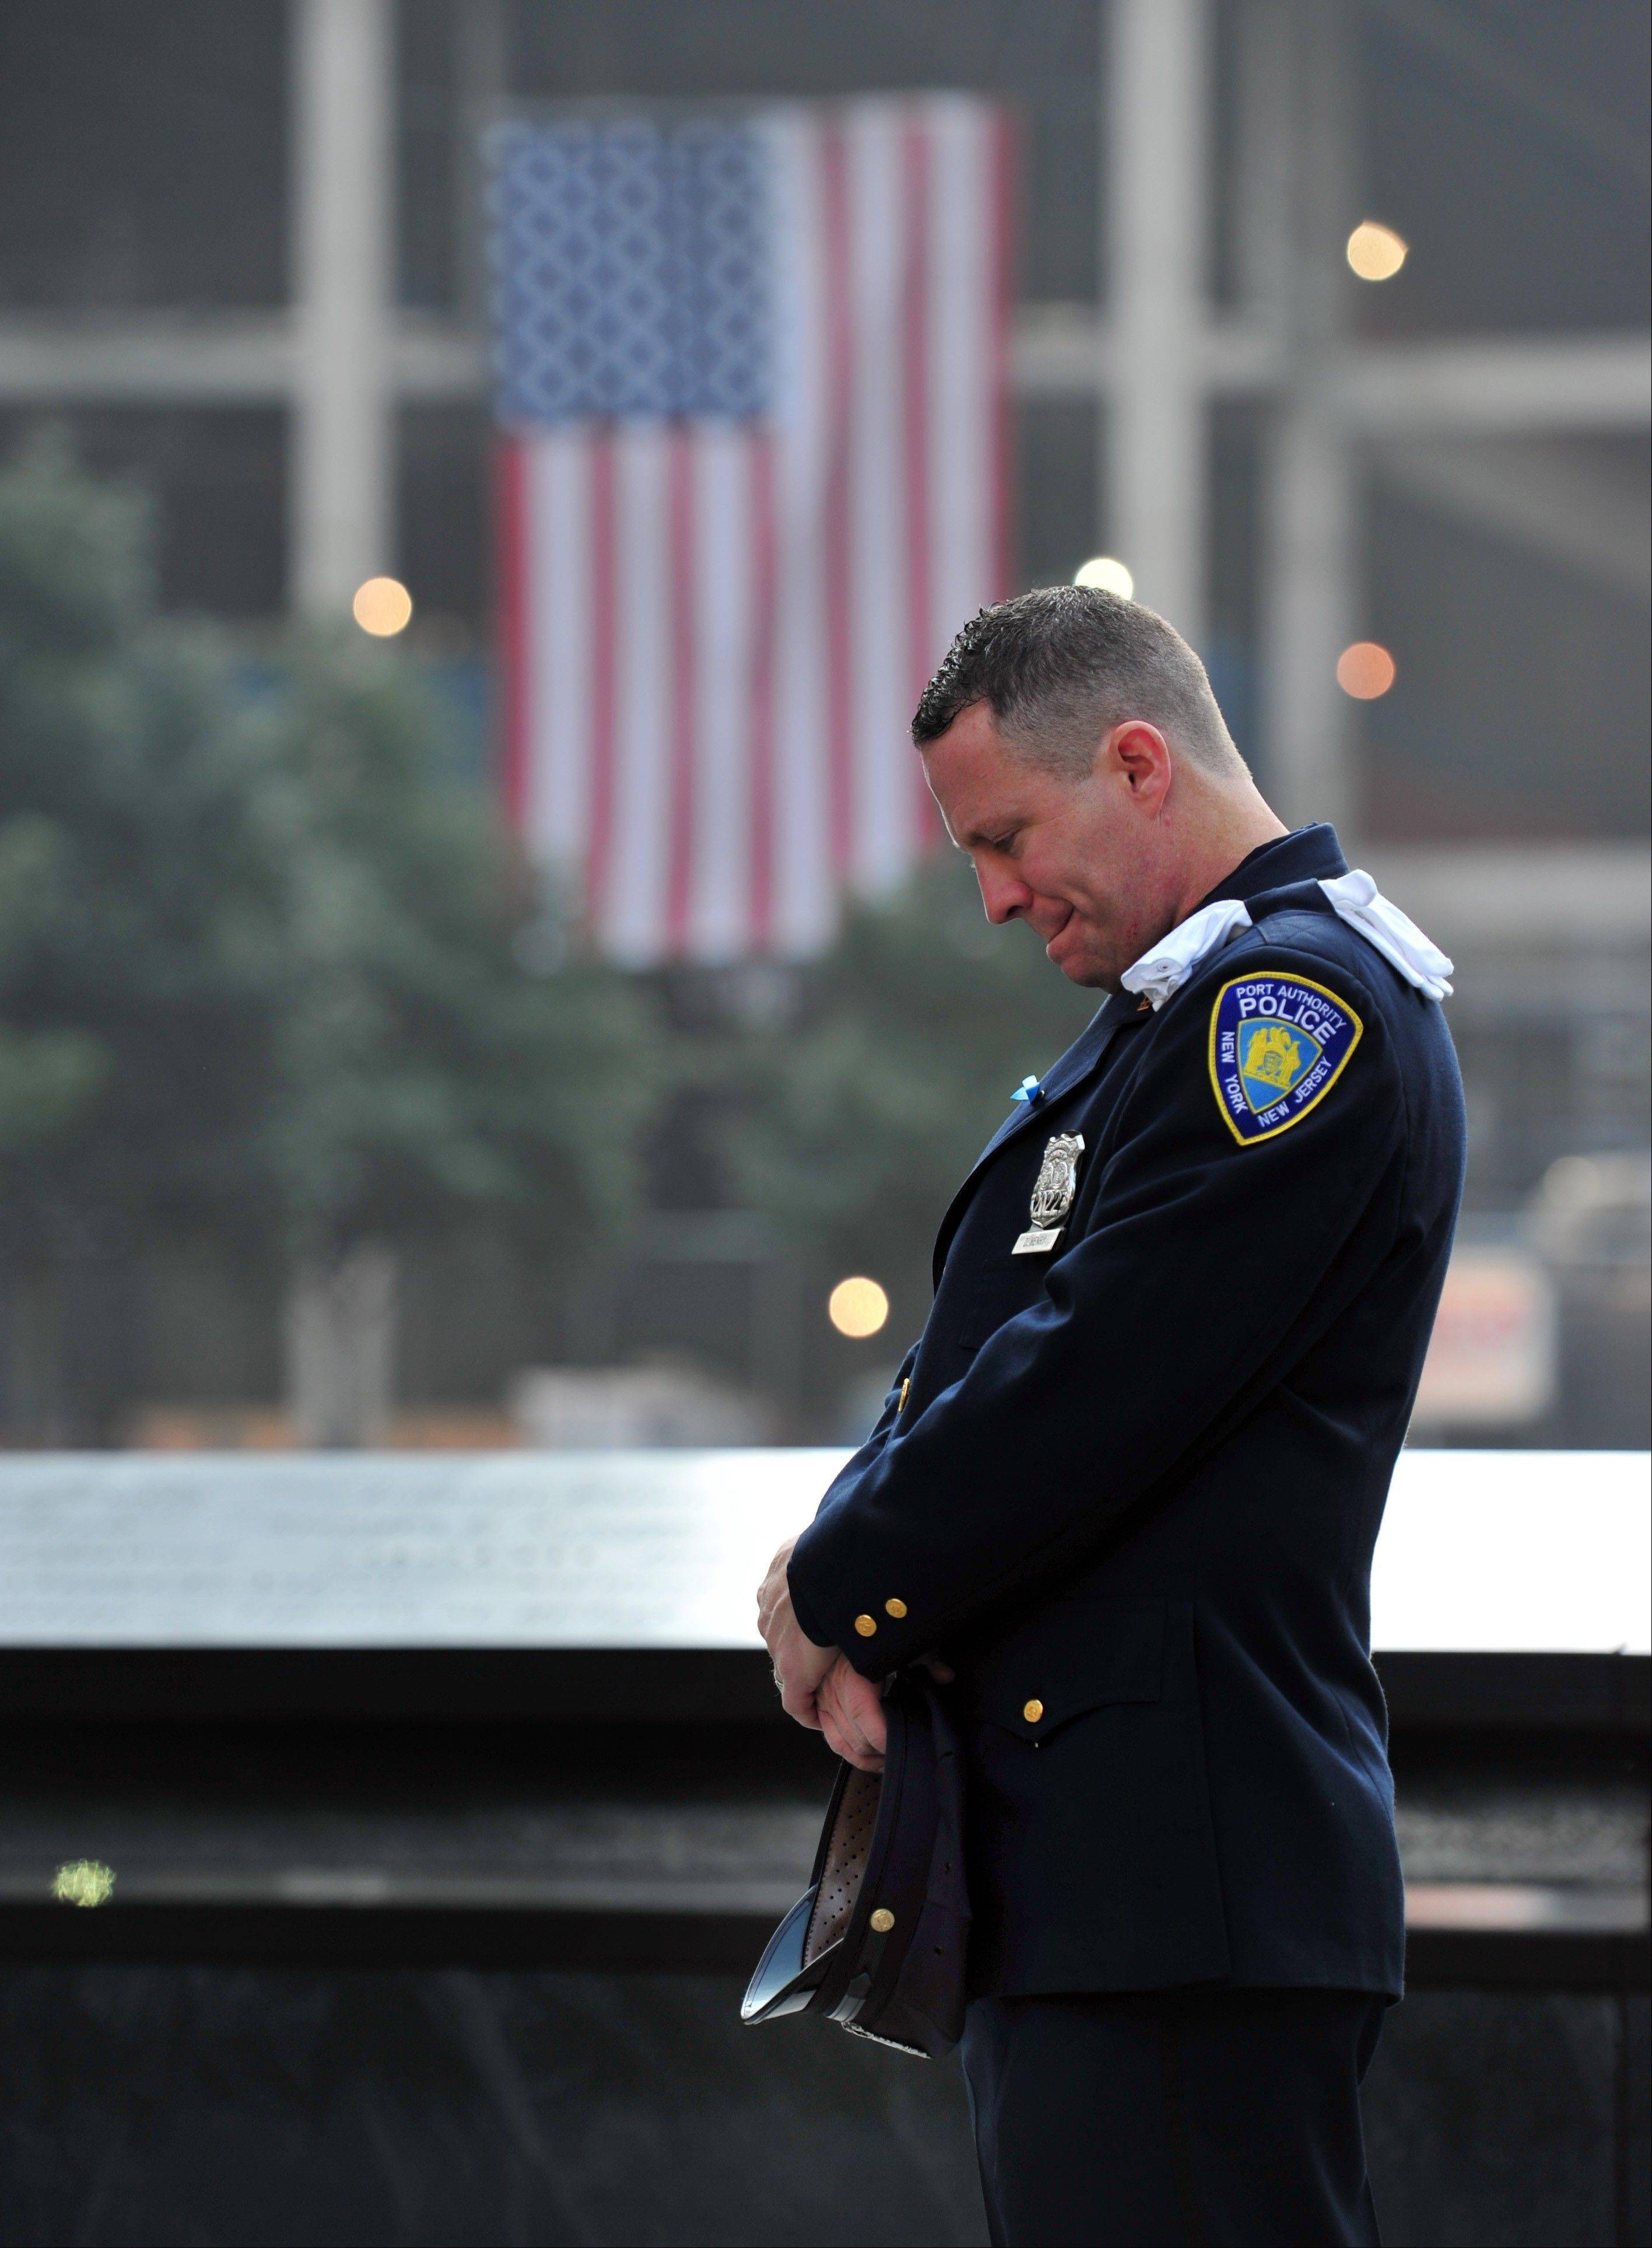 Daniel Henry, a Port Authority of New York/New Jersey police officer, pauses during a moment of silence at 9:01 a.m. at the south reflecting pool at the Sept. 11 memorial on Wednesday, Sept. 11, 2013, during ceremonies marking the 12th anniversary of the 9/11 terrorist attacks in New York.